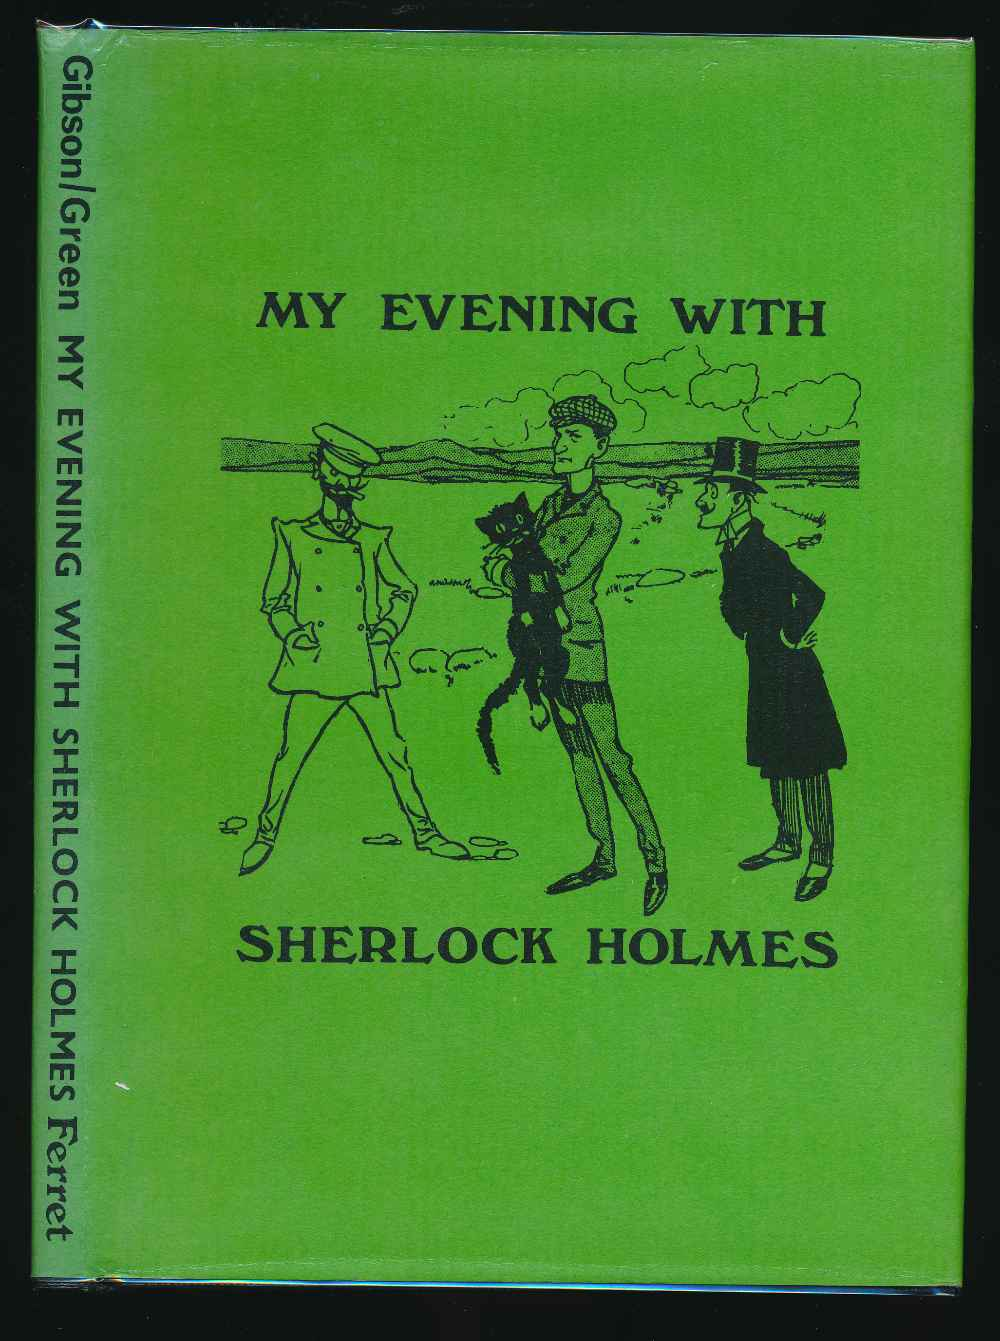 My evening with Sherlock Holmes